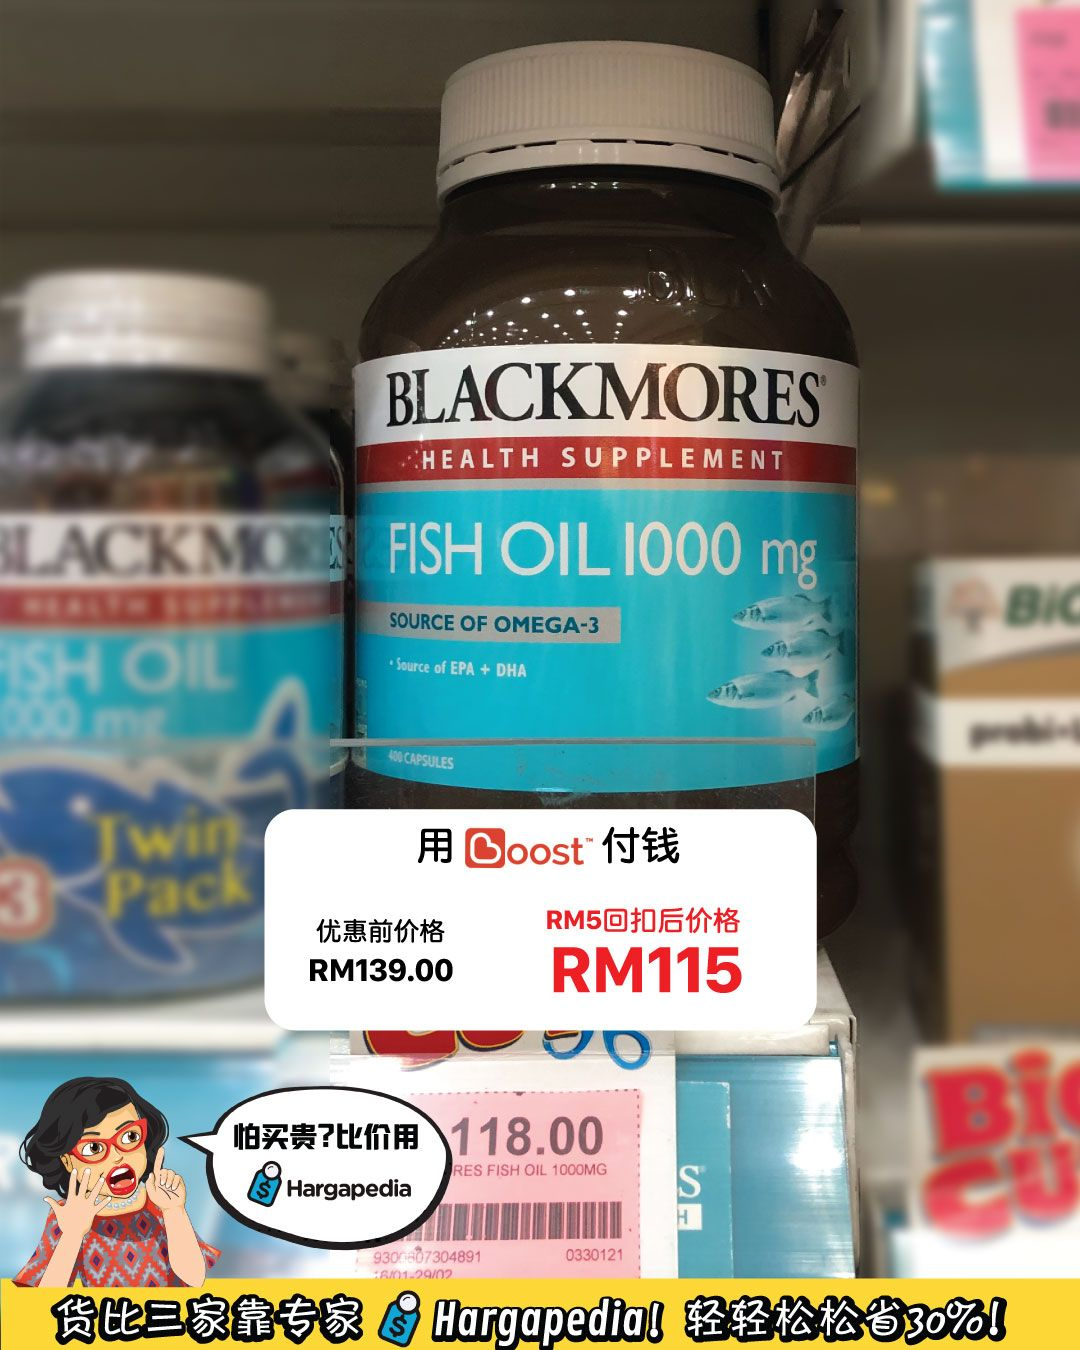 Caring-Blackmores-Fish-Oil-1000mg-400s